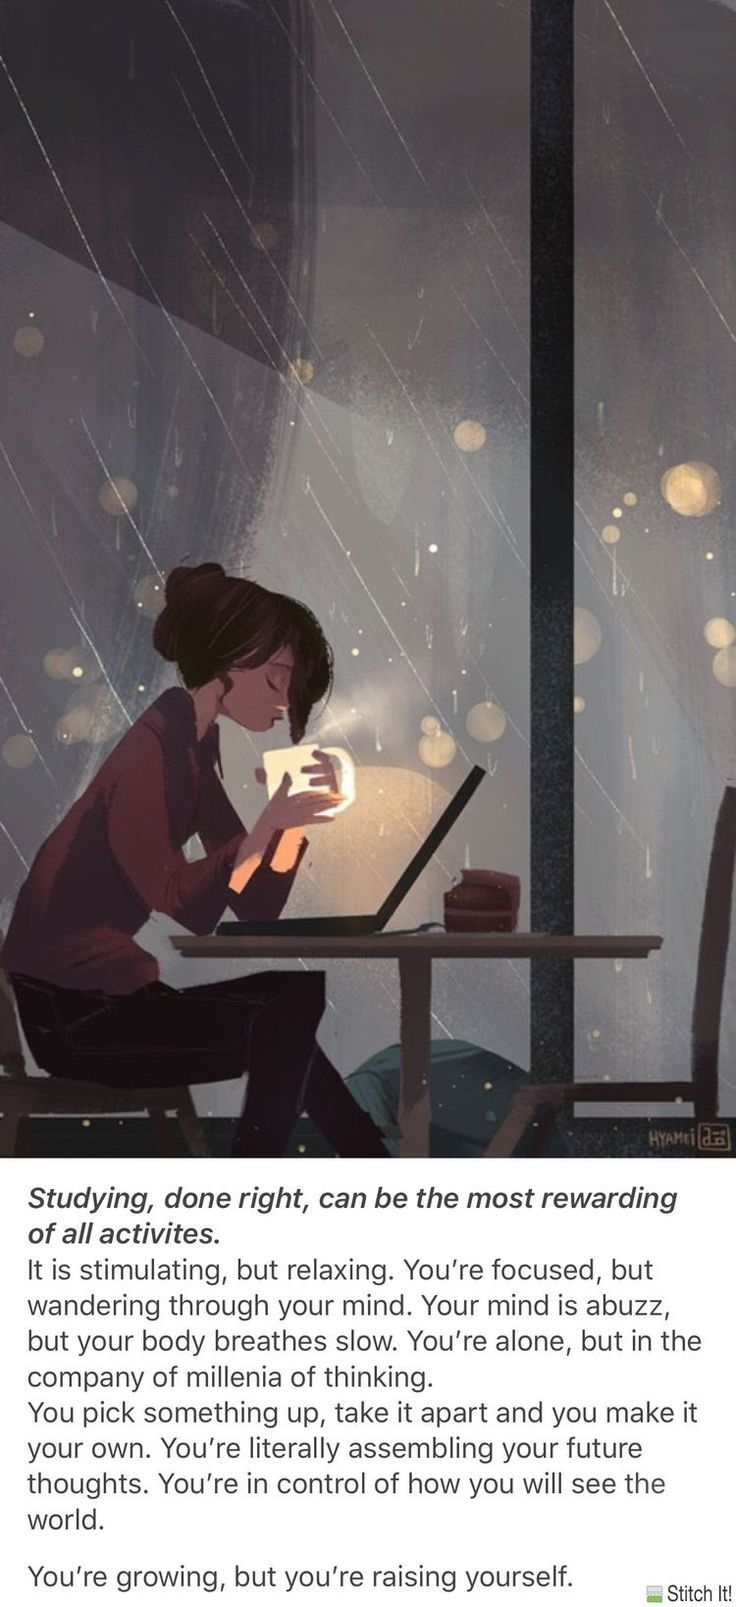 My favorite way to study, …at peace, with coffee, cozy inside with rain out a huge window